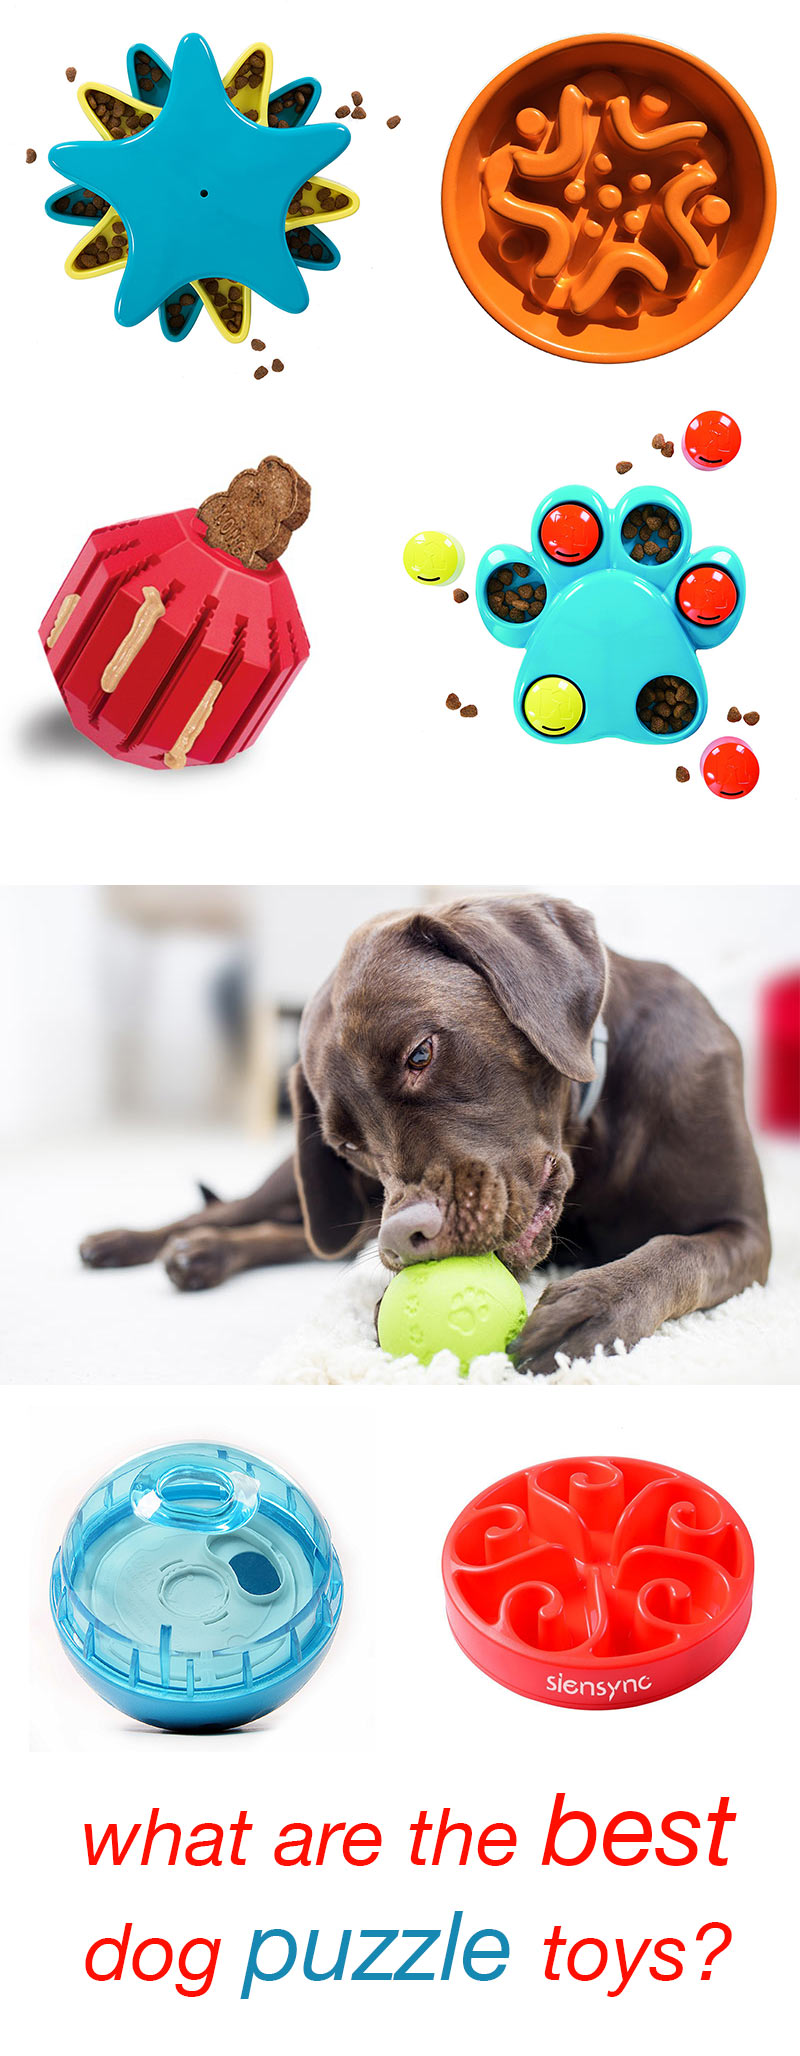 The Best Dog Puzzle Toys - top choices for active, intelligent and bored pups